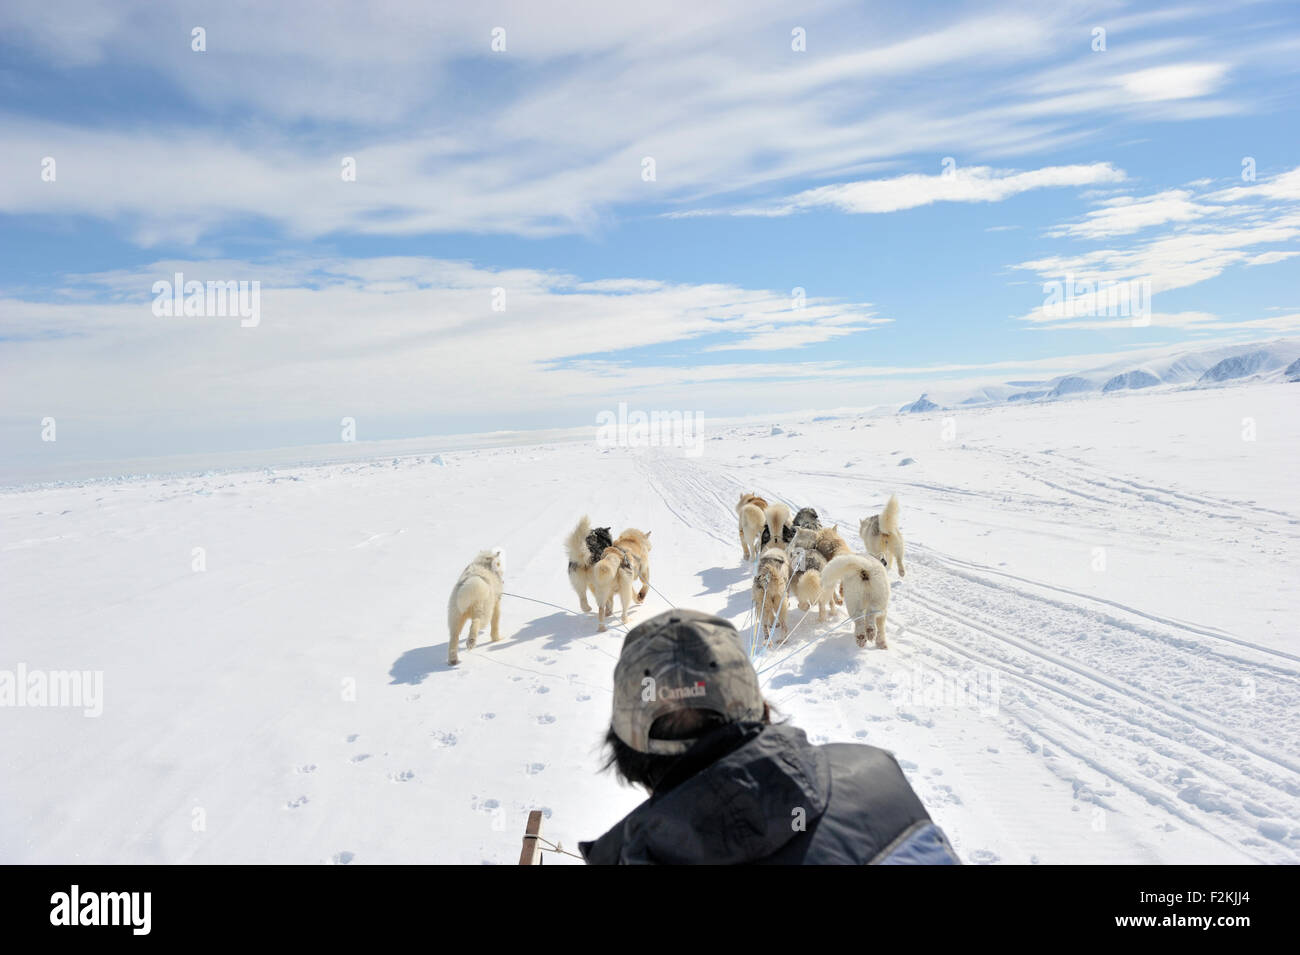 Husky sled dogs running in front of sledge with person seen from behind on sea ice, Baffin bay, Nunavut, Canada. - Stock Image